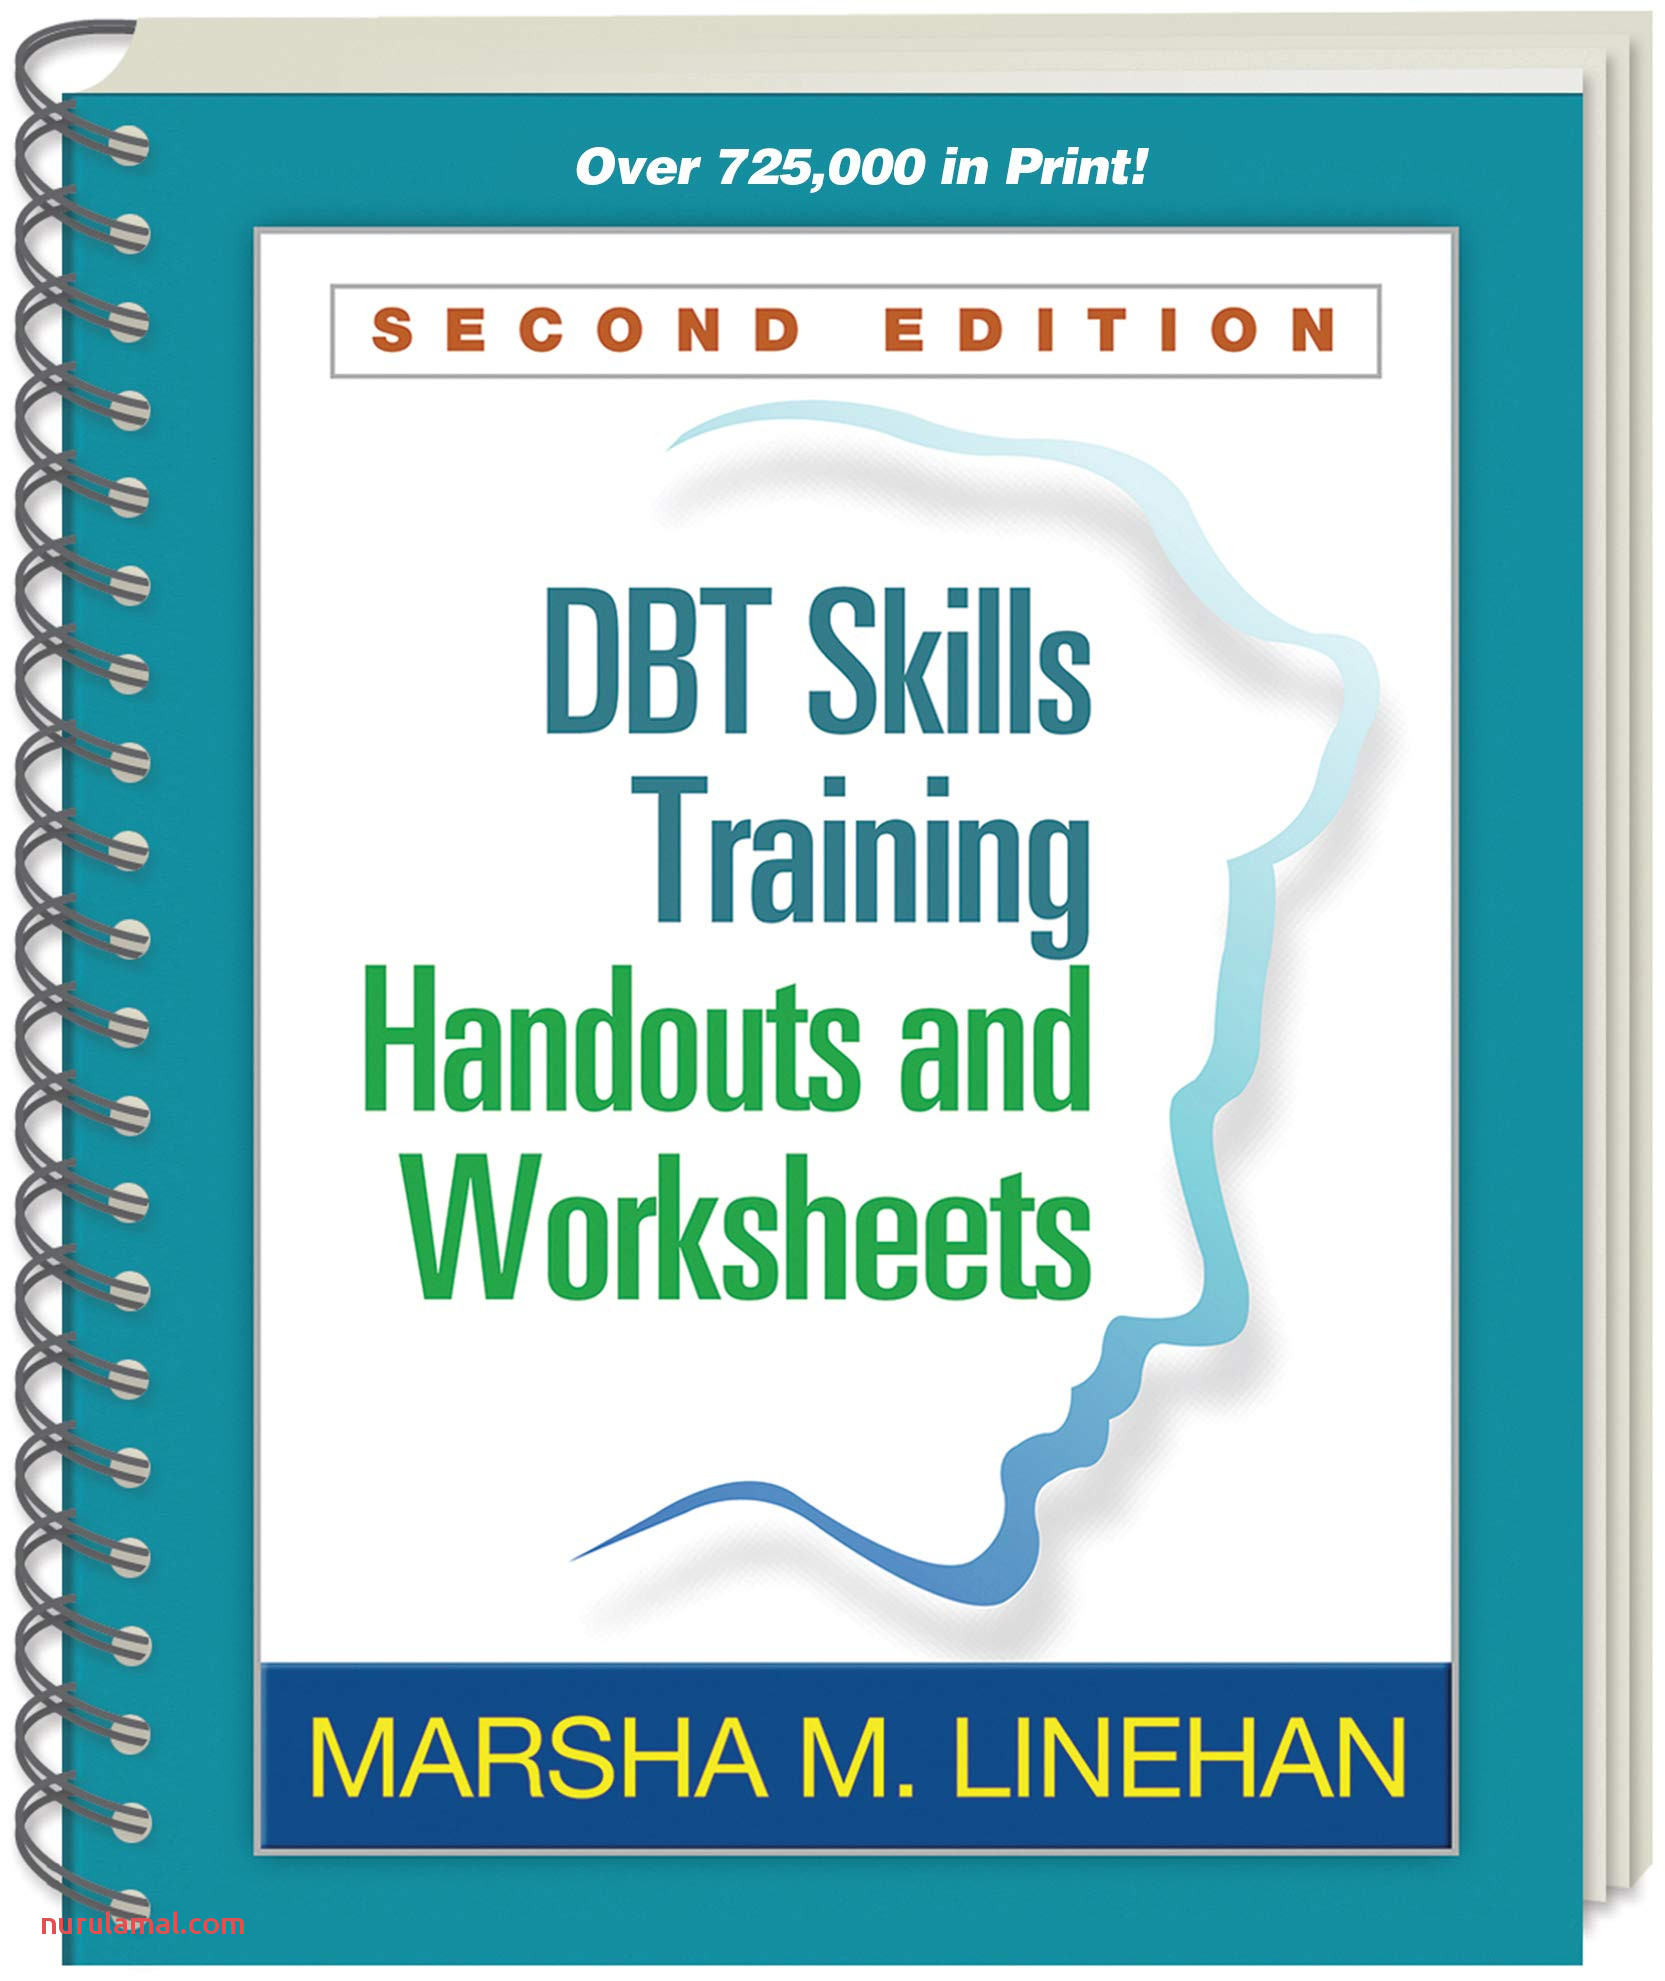 Dbt Skills Training Handouts and Worksheets Second Edition